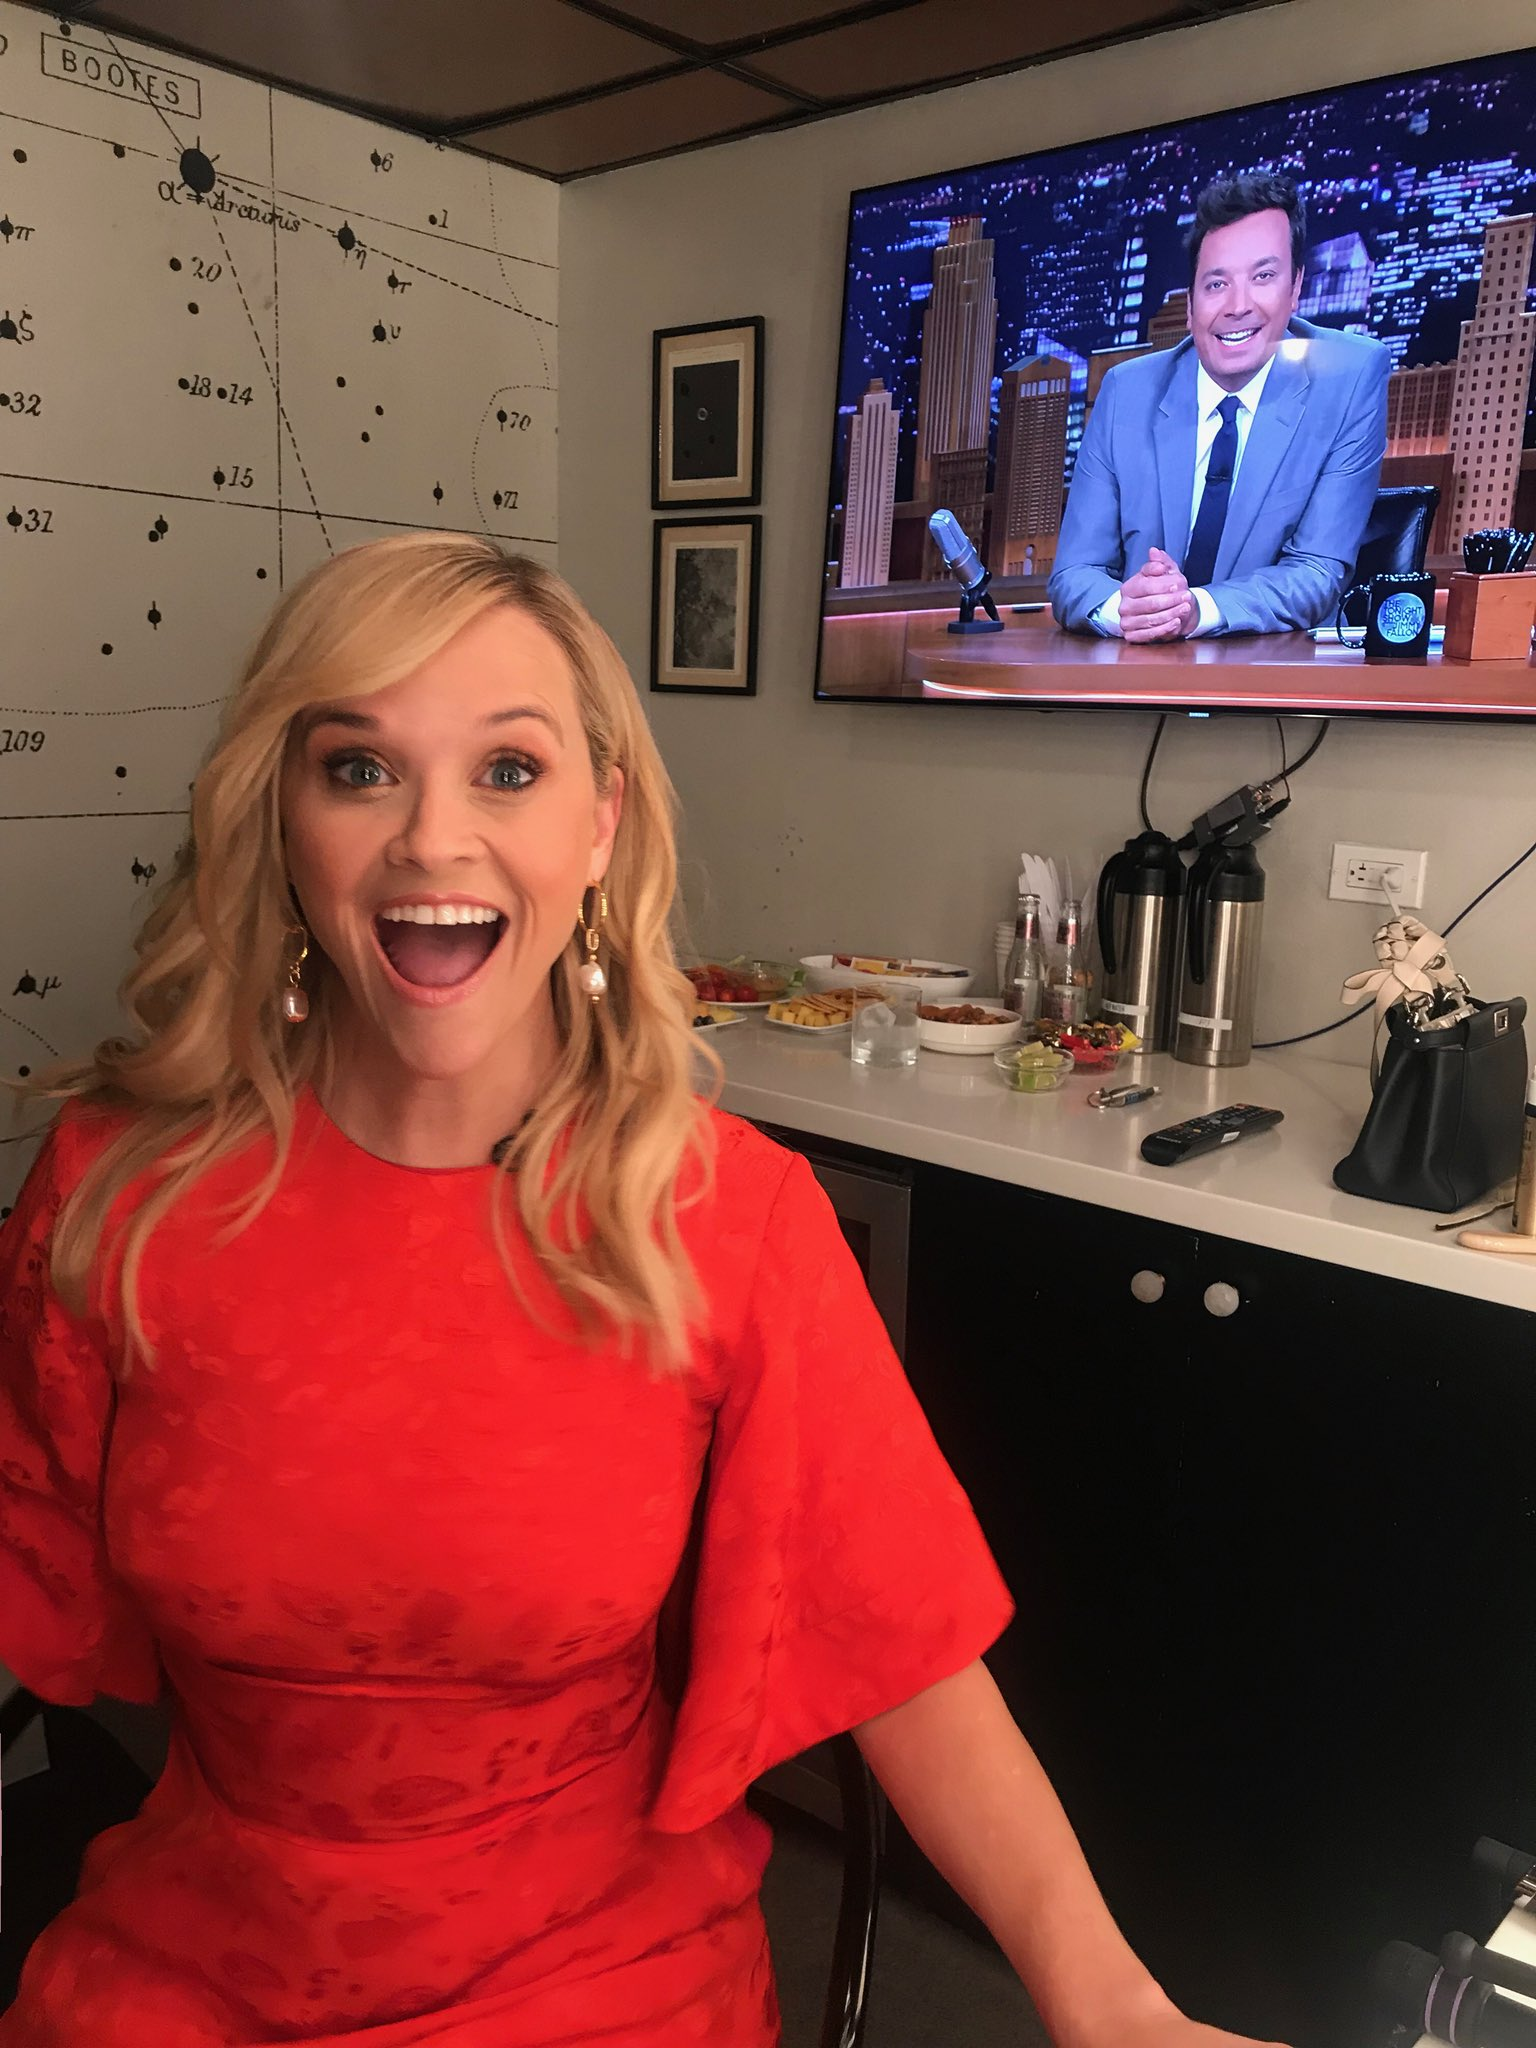 Hey you! �� Tune in to see me on @FallonTonight ! https://t.co/90G7RB6Une